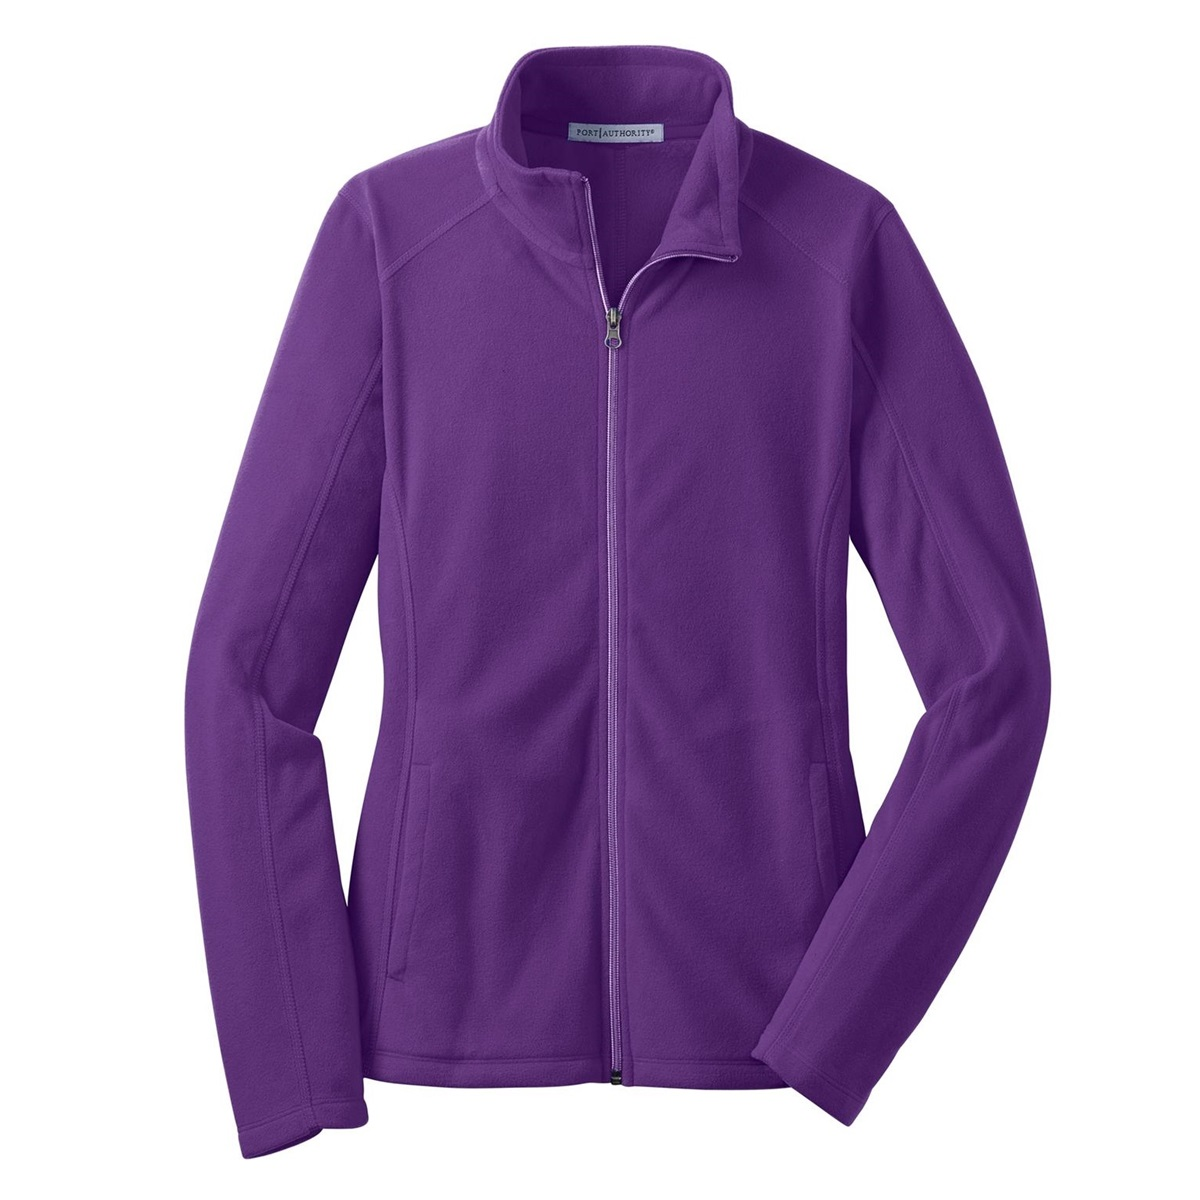 Purple Coats: Stay warm with our great selection of Women's coats from dirtyinstalzonevx6.ga Your Online Women's Outerwear Store! Get 5% in rewards with Club O! Coupon Activated! Aureka Prugna Purple Padded Women's Cropped Jacket. SALE ends in 3 days. Quick View. Sale $ 44 - $